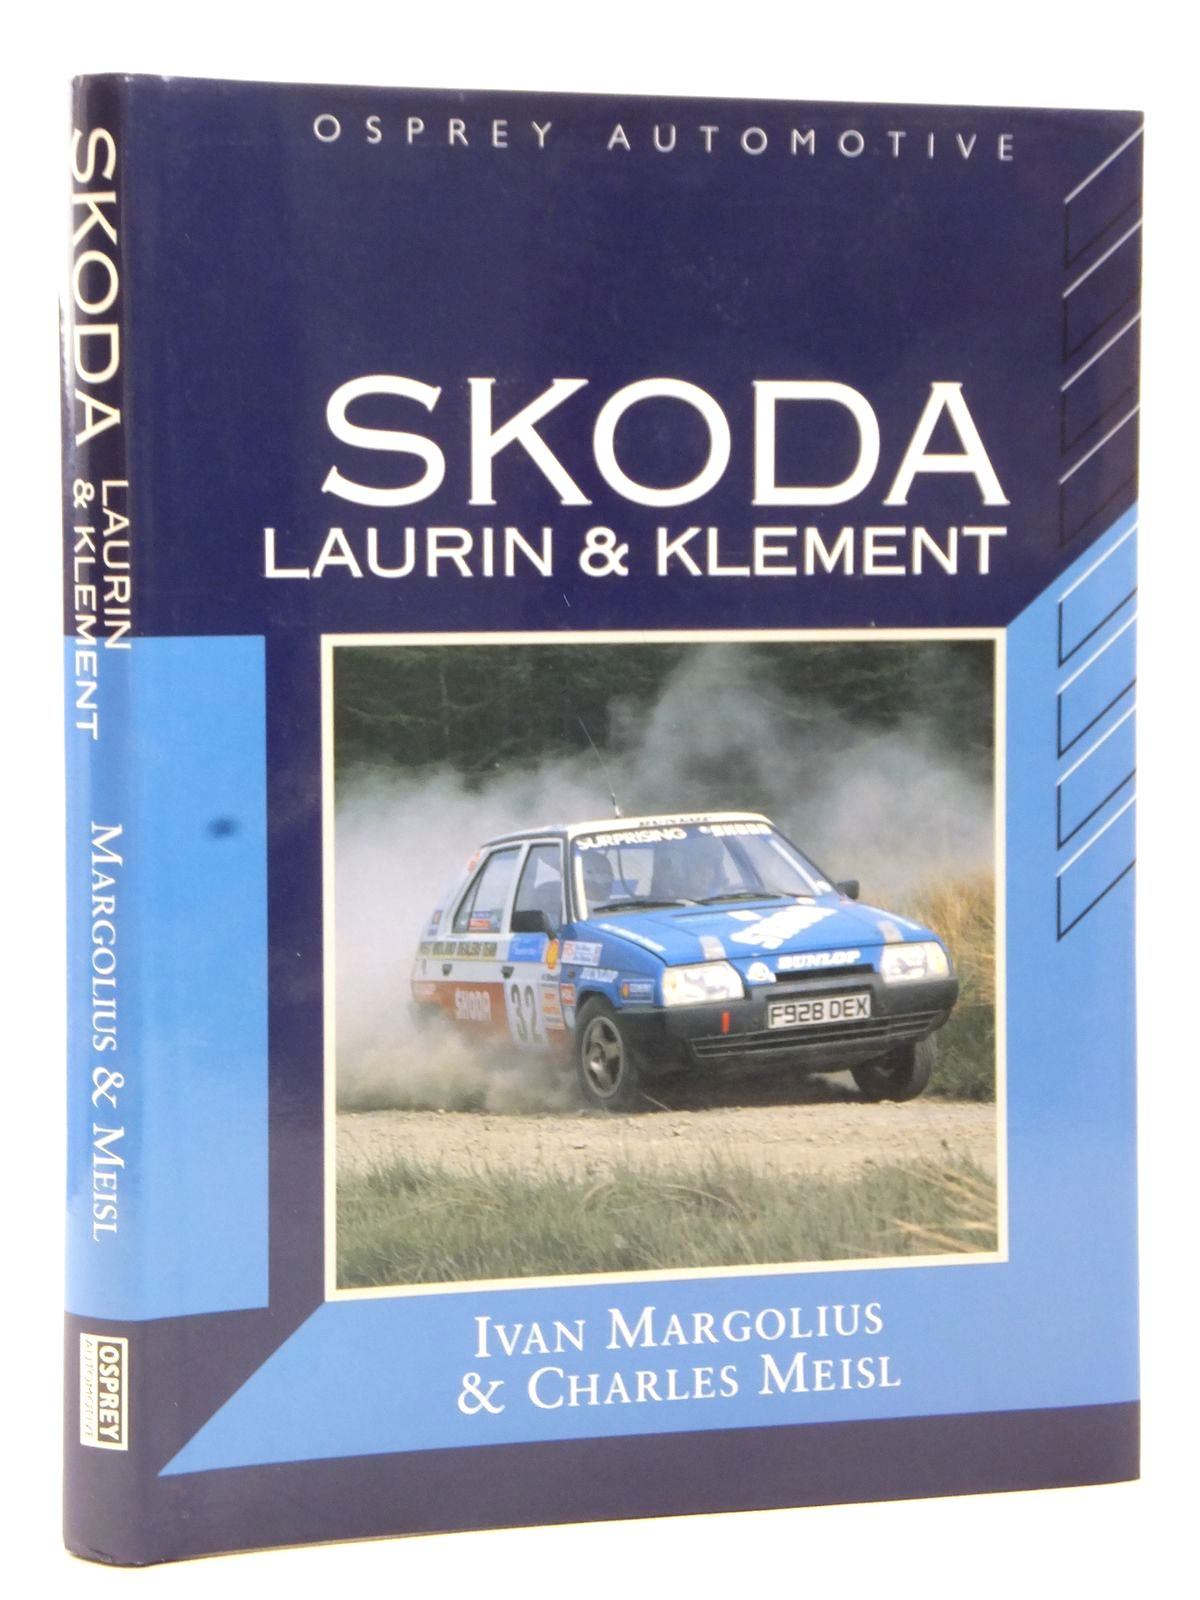 Photo of SKODA LAURIN & KLEMENT written by Margolius, Ivan Meisl, Charles published by Osprey Automotive (STOCK CODE: 1608999)  for sale by Stella & Rose's Books